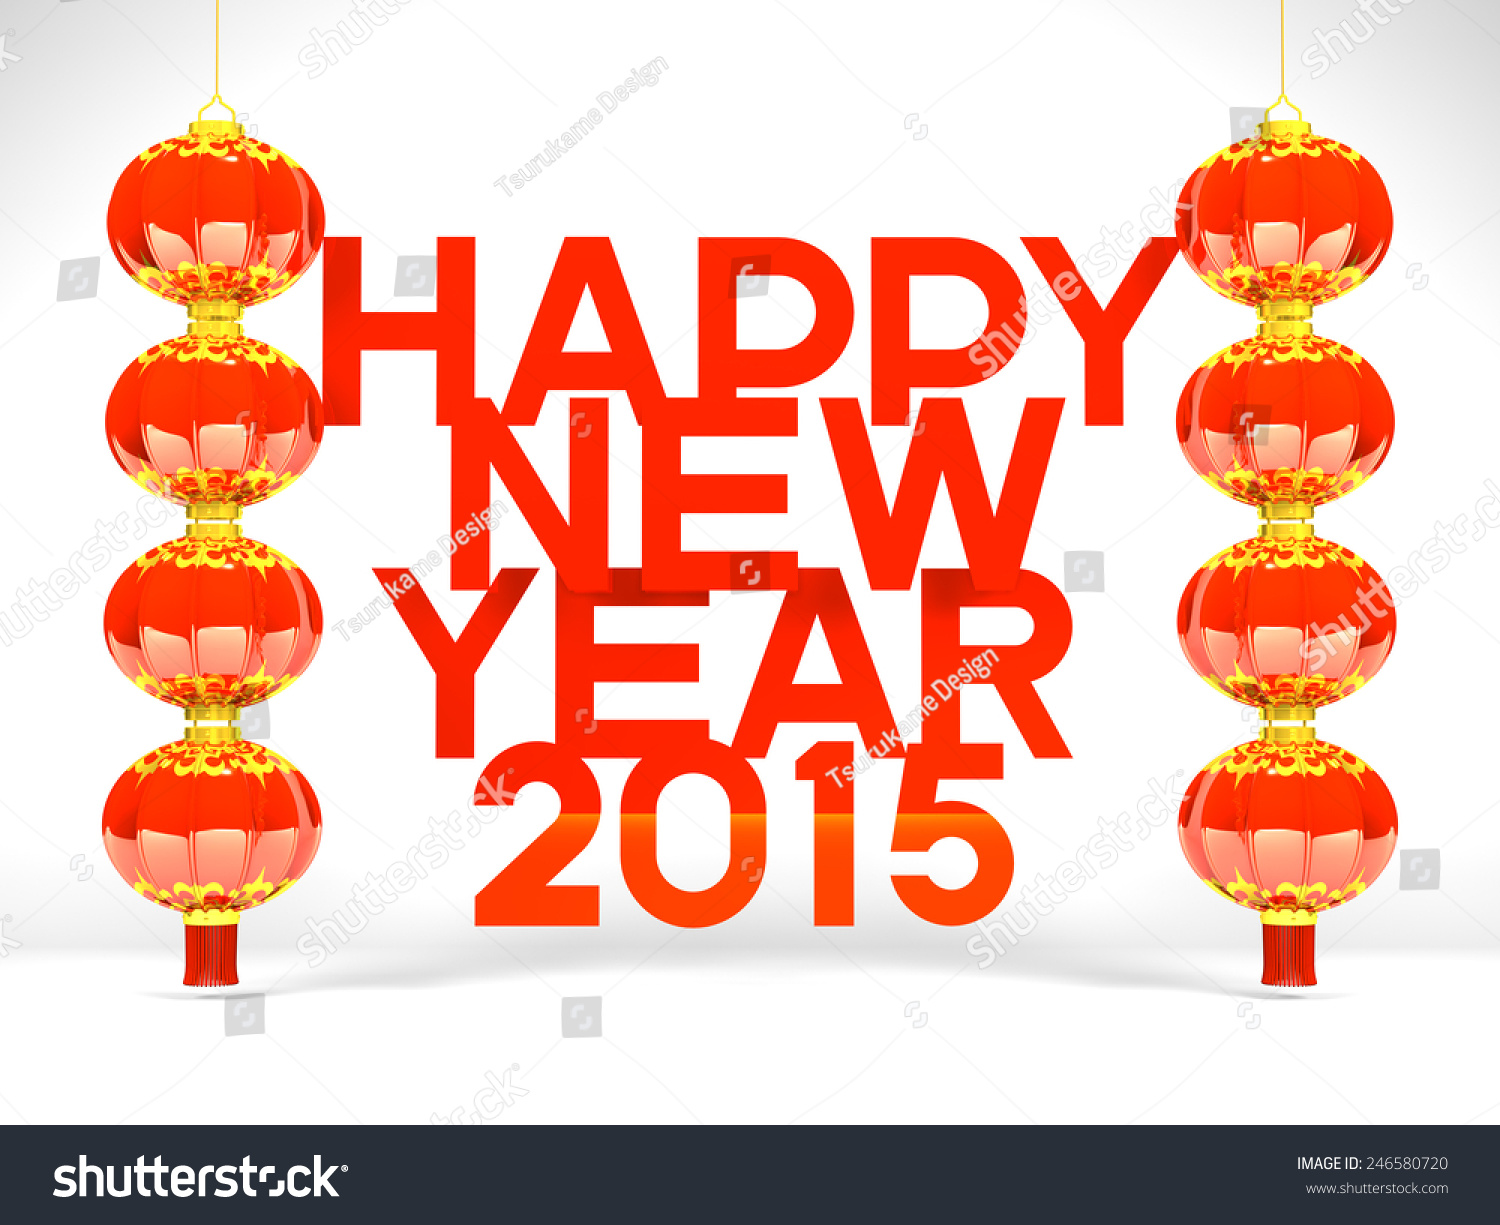 Lunar new years lanterns 2015 greeting stock illustration lunar new years lanterns 2015 greeting on white background 3d render illustration for new kristyandbryce Gallery